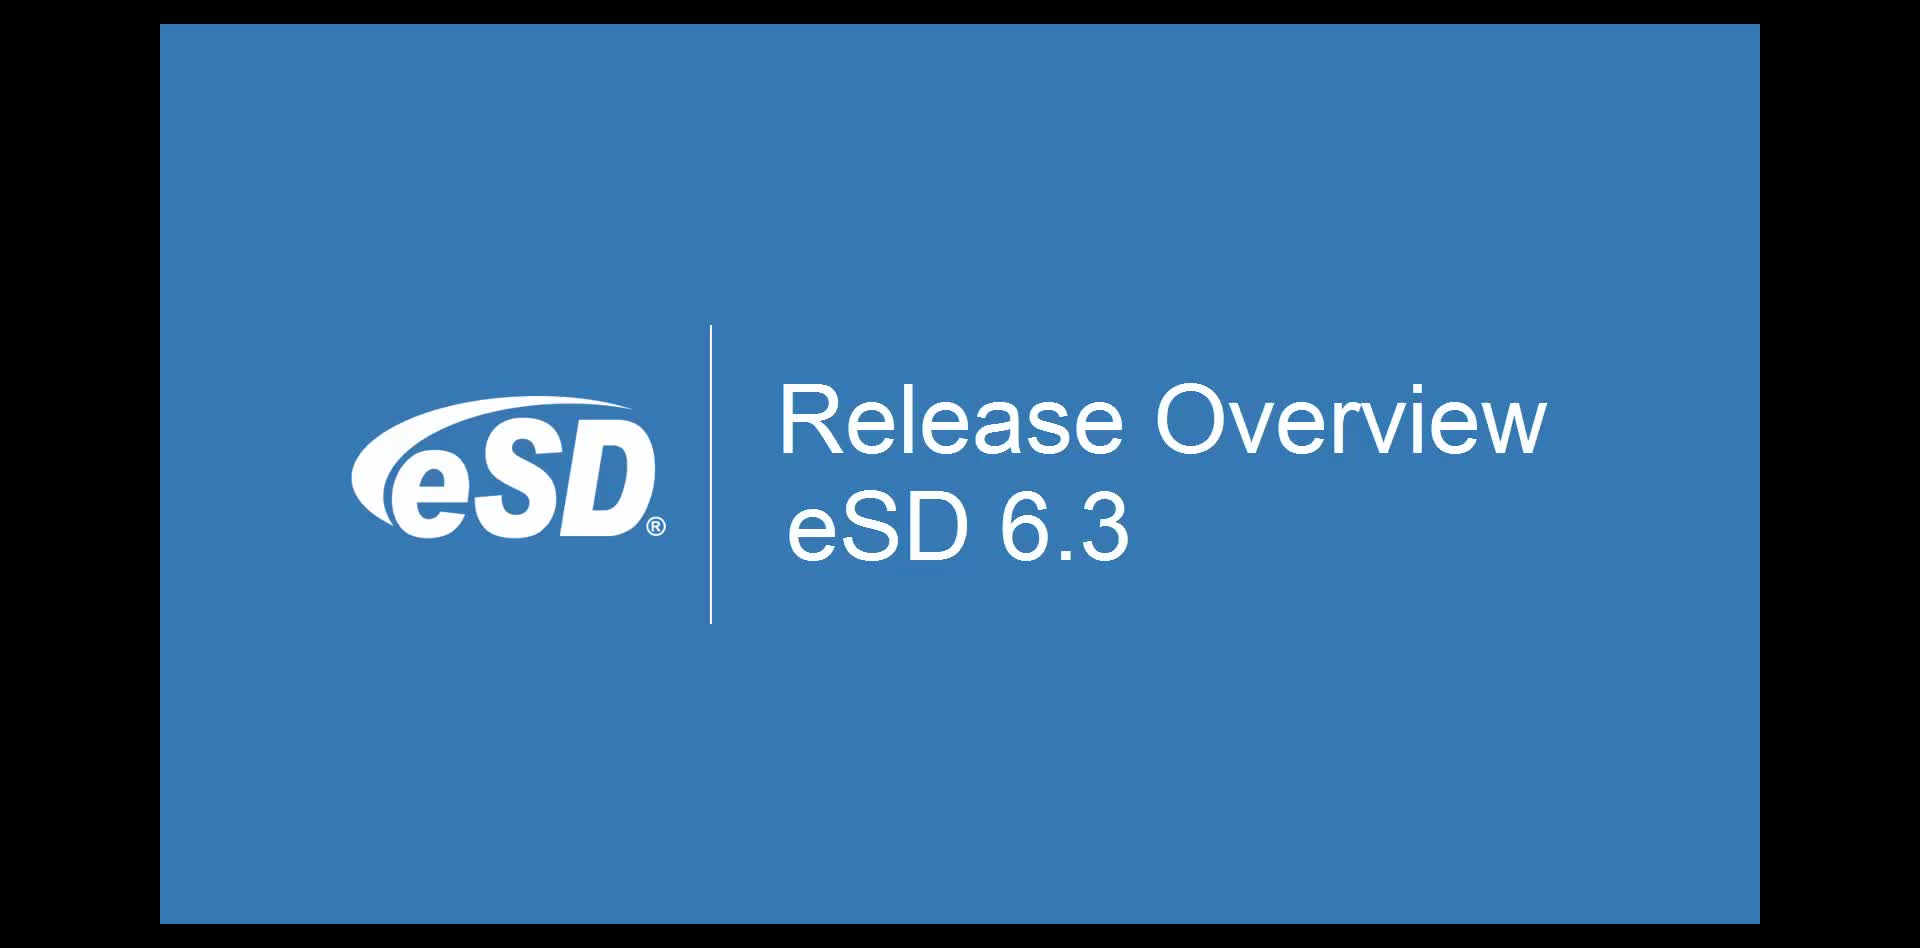 eSD 6.3 Release Overview